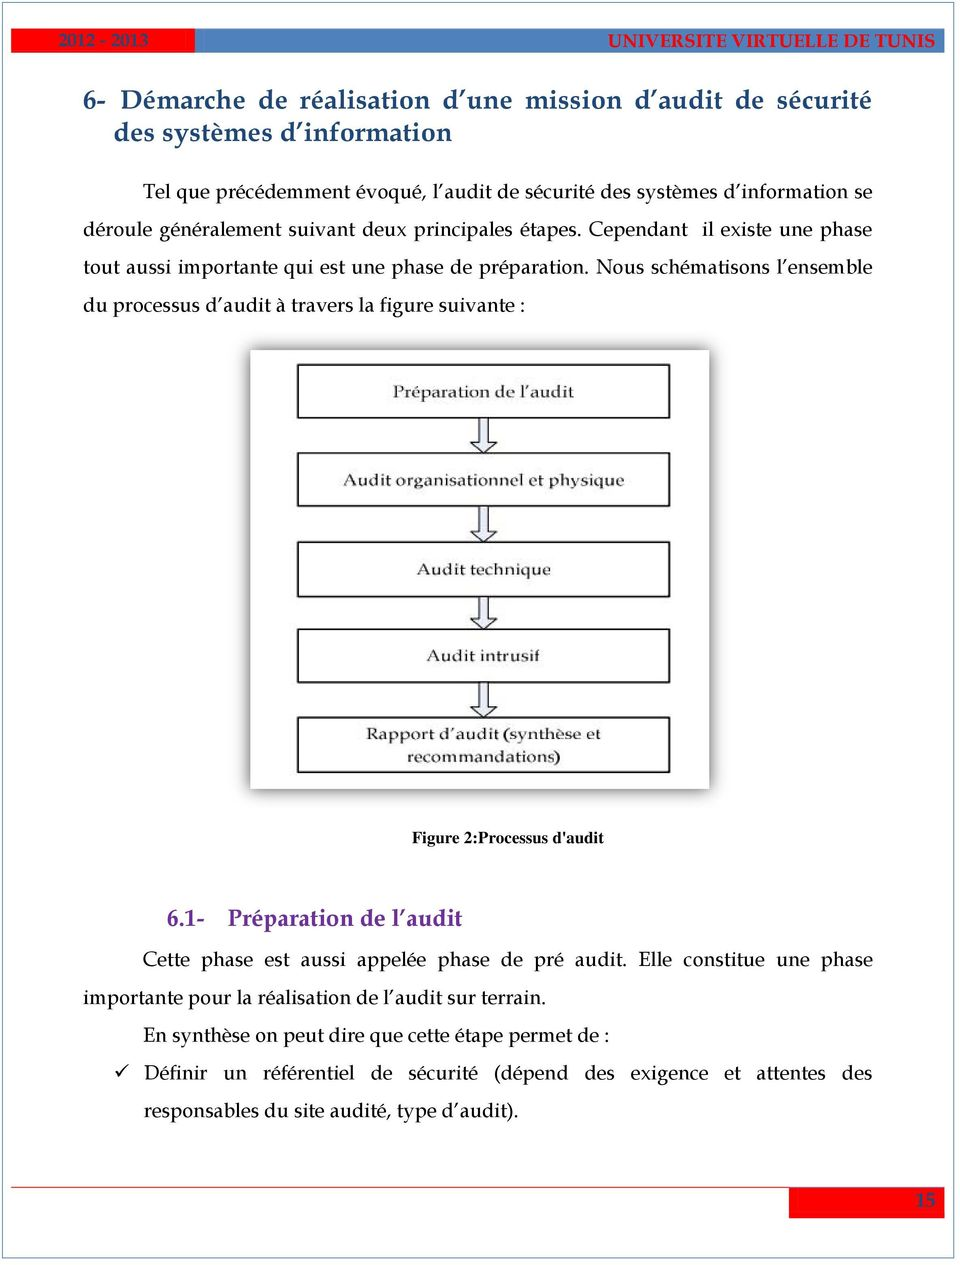 ous schématisons l ensemble du processus d audit à travers la figure suivante : Figure 2:Processus d'audit 6.1- Préparation de l audit Cette phase est aussi appelée phase de pré audit.